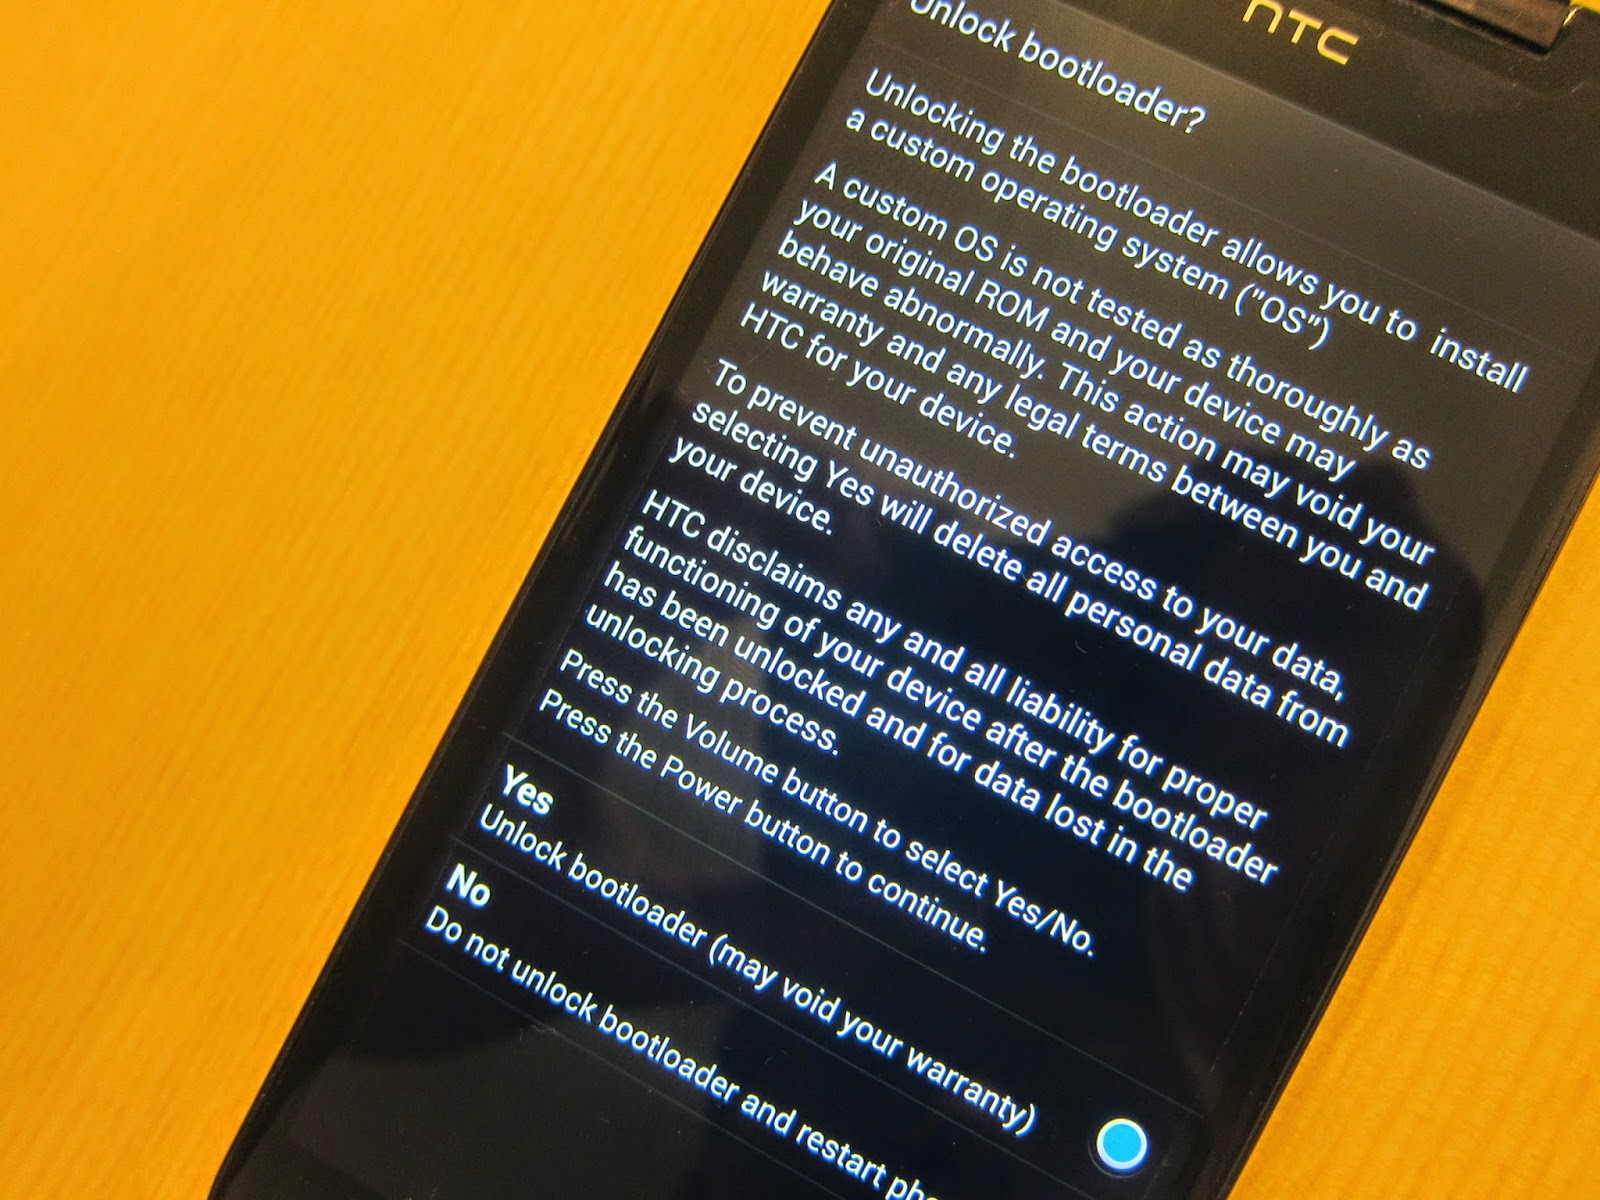 IMG 2324 - 【圖文教學】HTC Butterfly 4.3/4.4 解鎖+ROOT